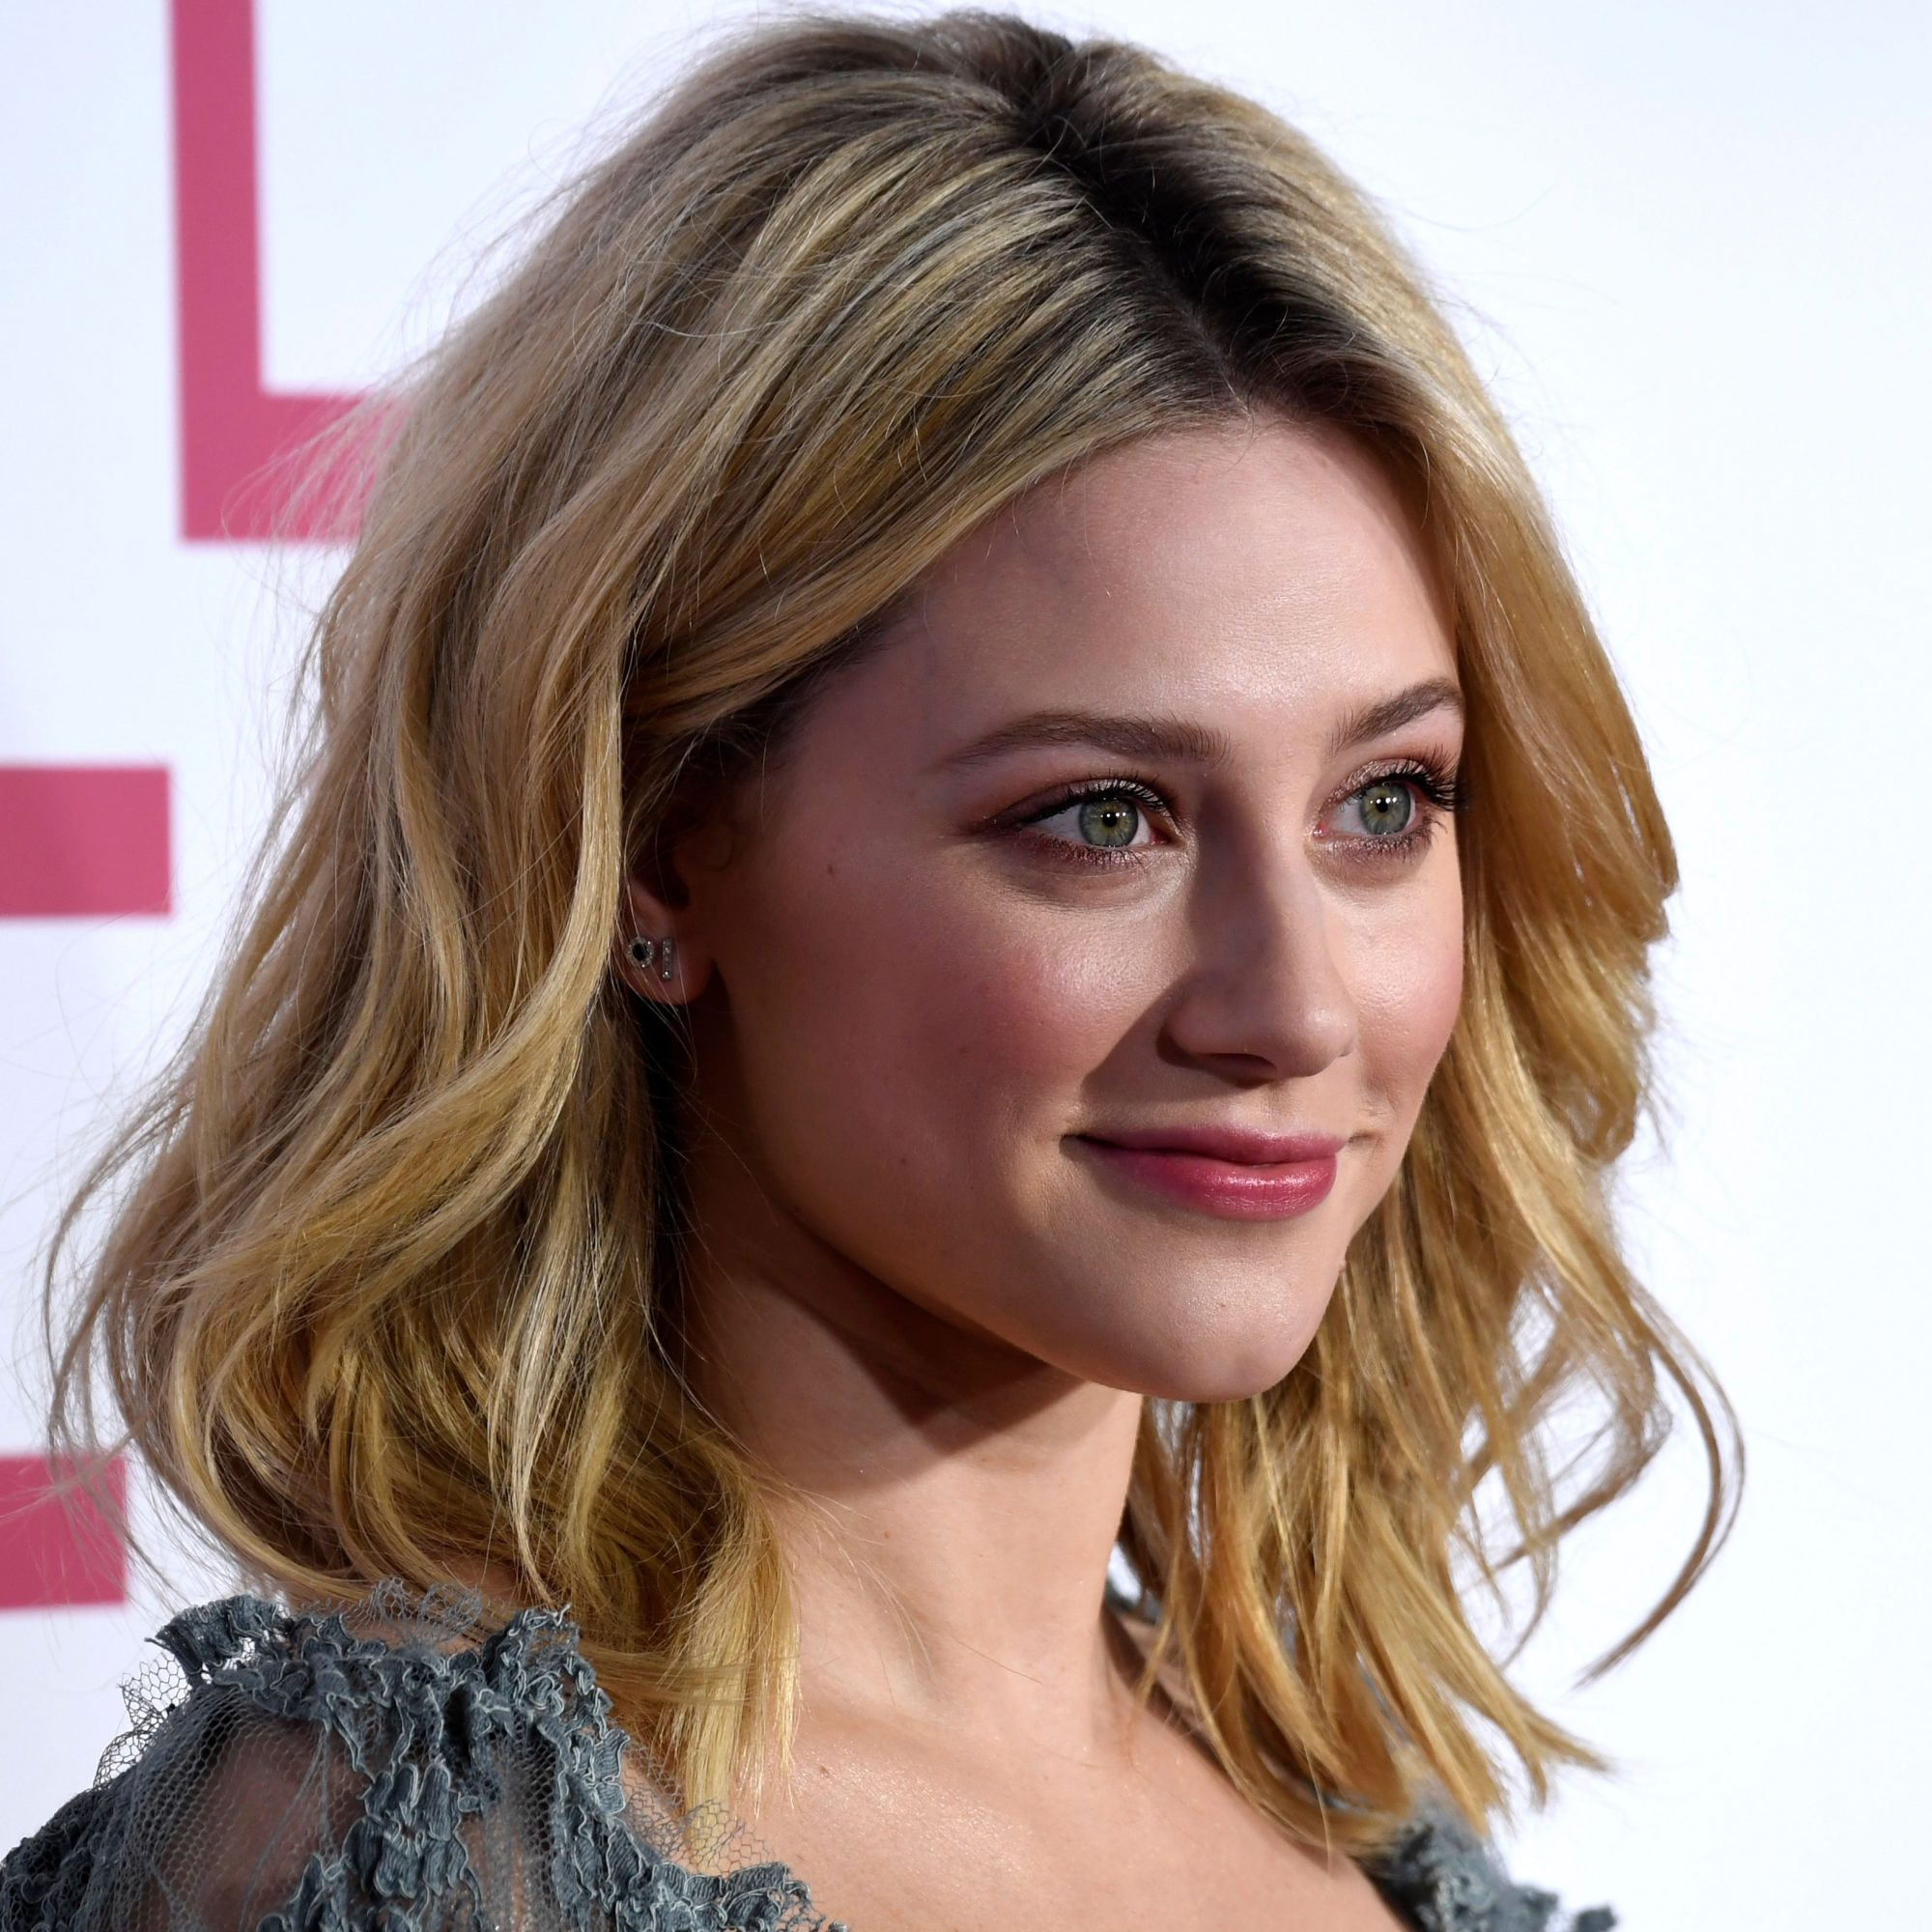 Medium Length Hairstyle: Full Body and Tousled Waves, Lili Reinhart